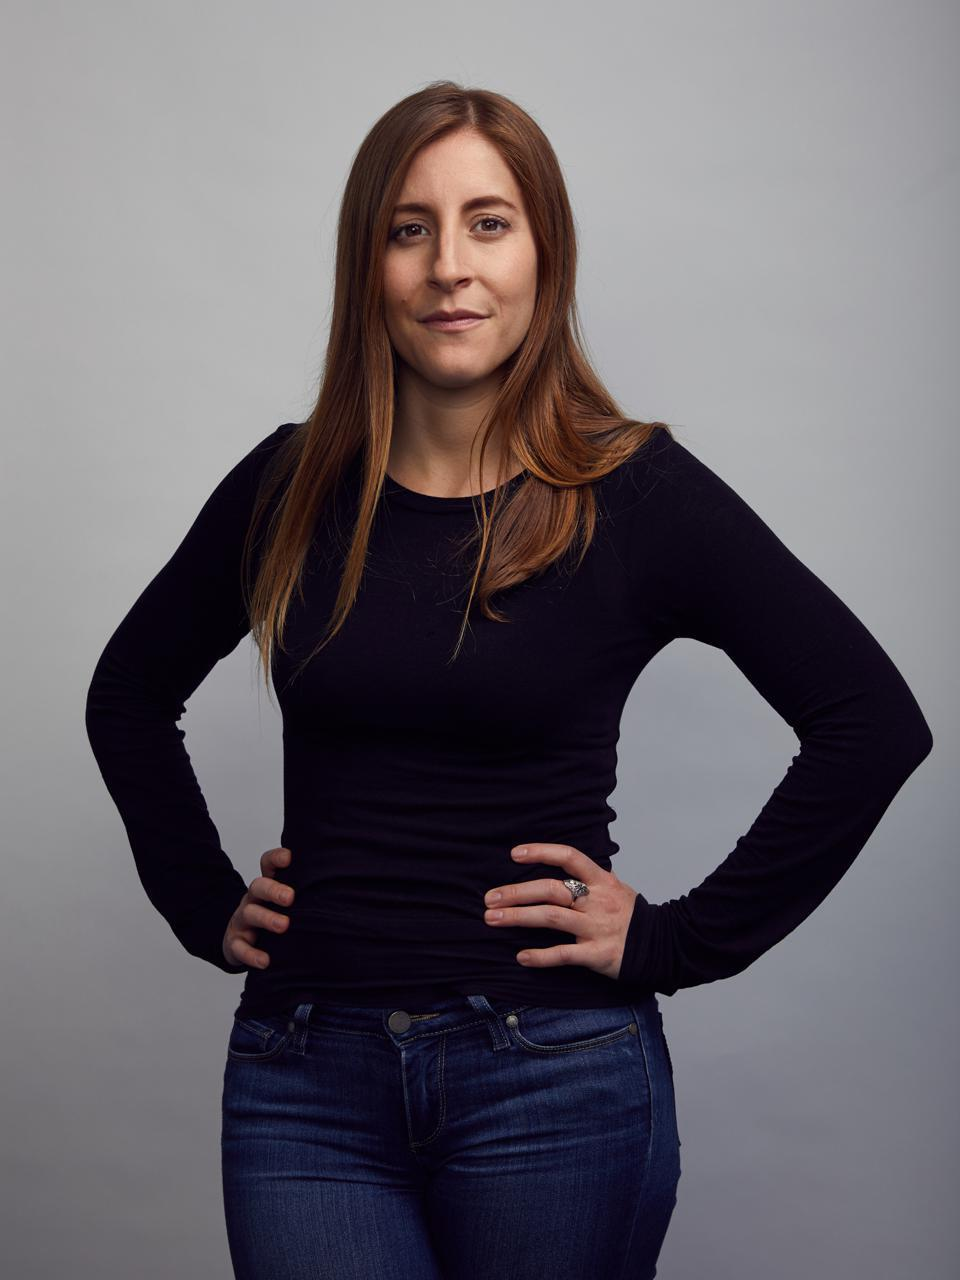 Divvy Homes CEO and cofounder Adena Hefets